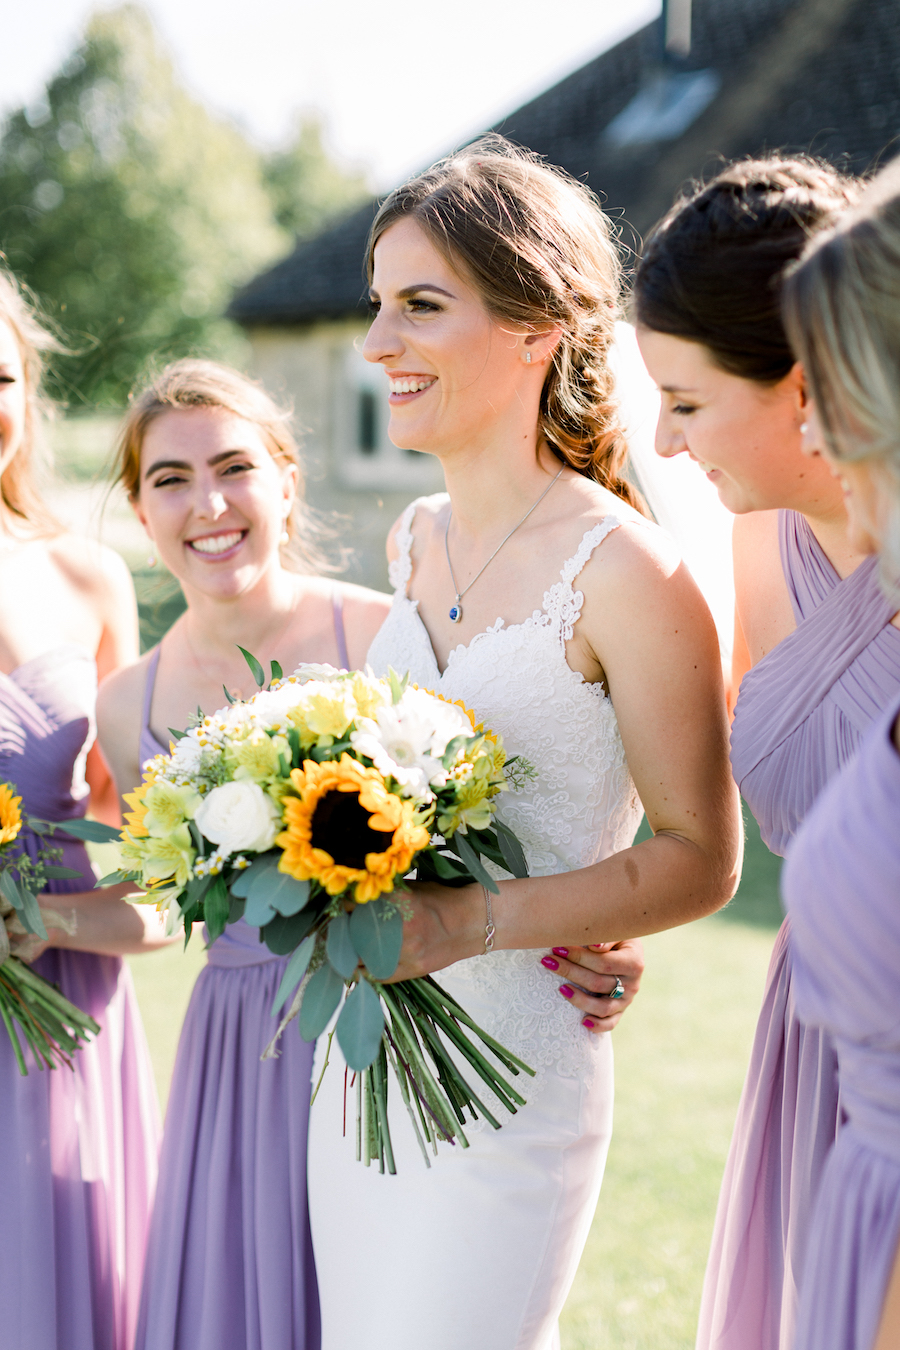 Louisa & Will's light and airy sunflower wedding at Lapstone Barn, with Hannah K Photography (19)